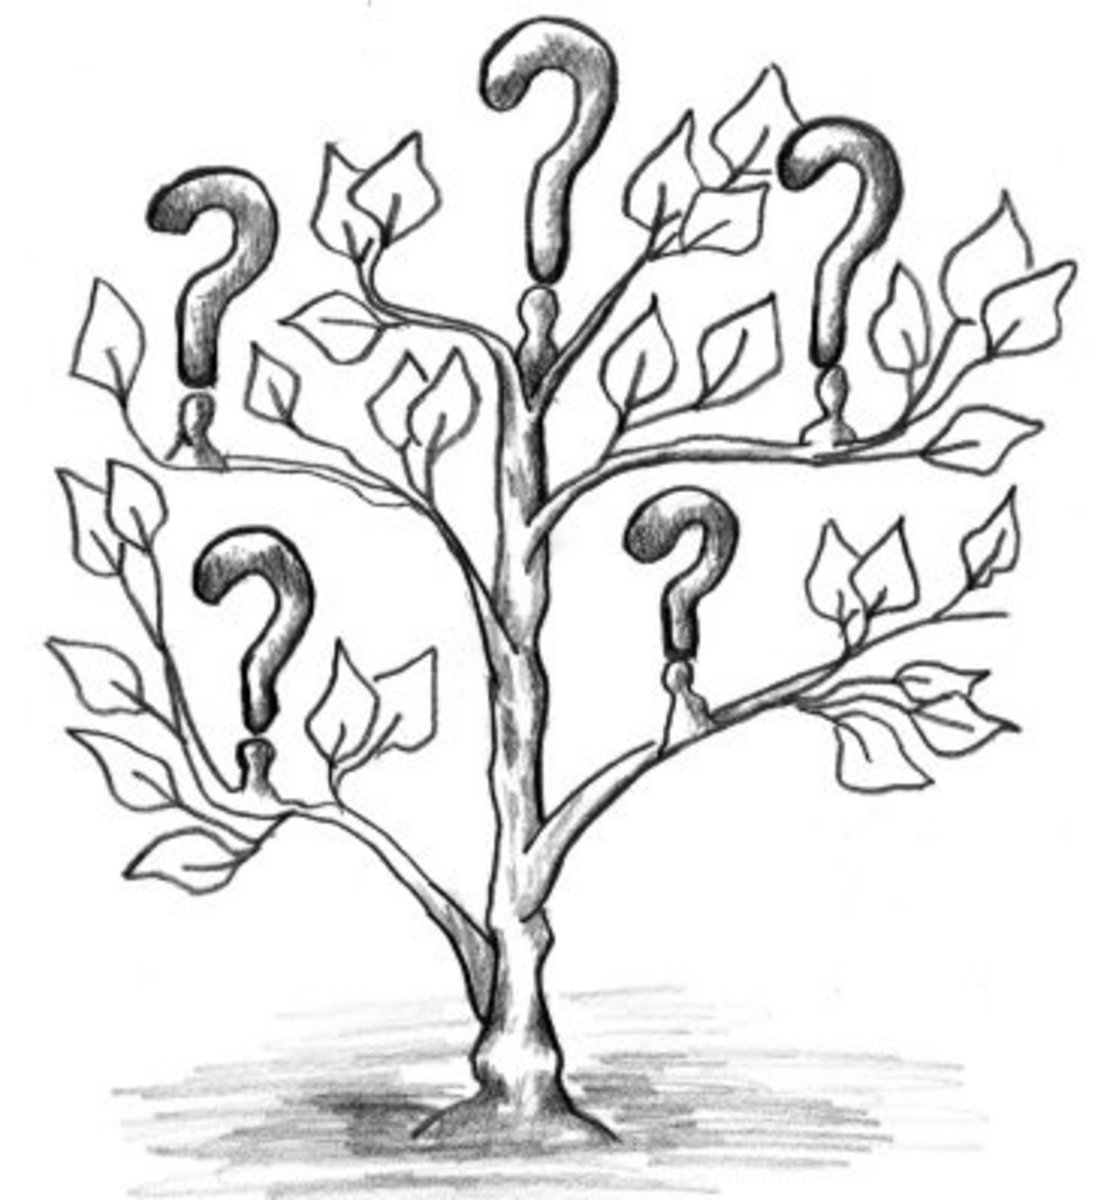 What Are Different Types of Questioning Techniques